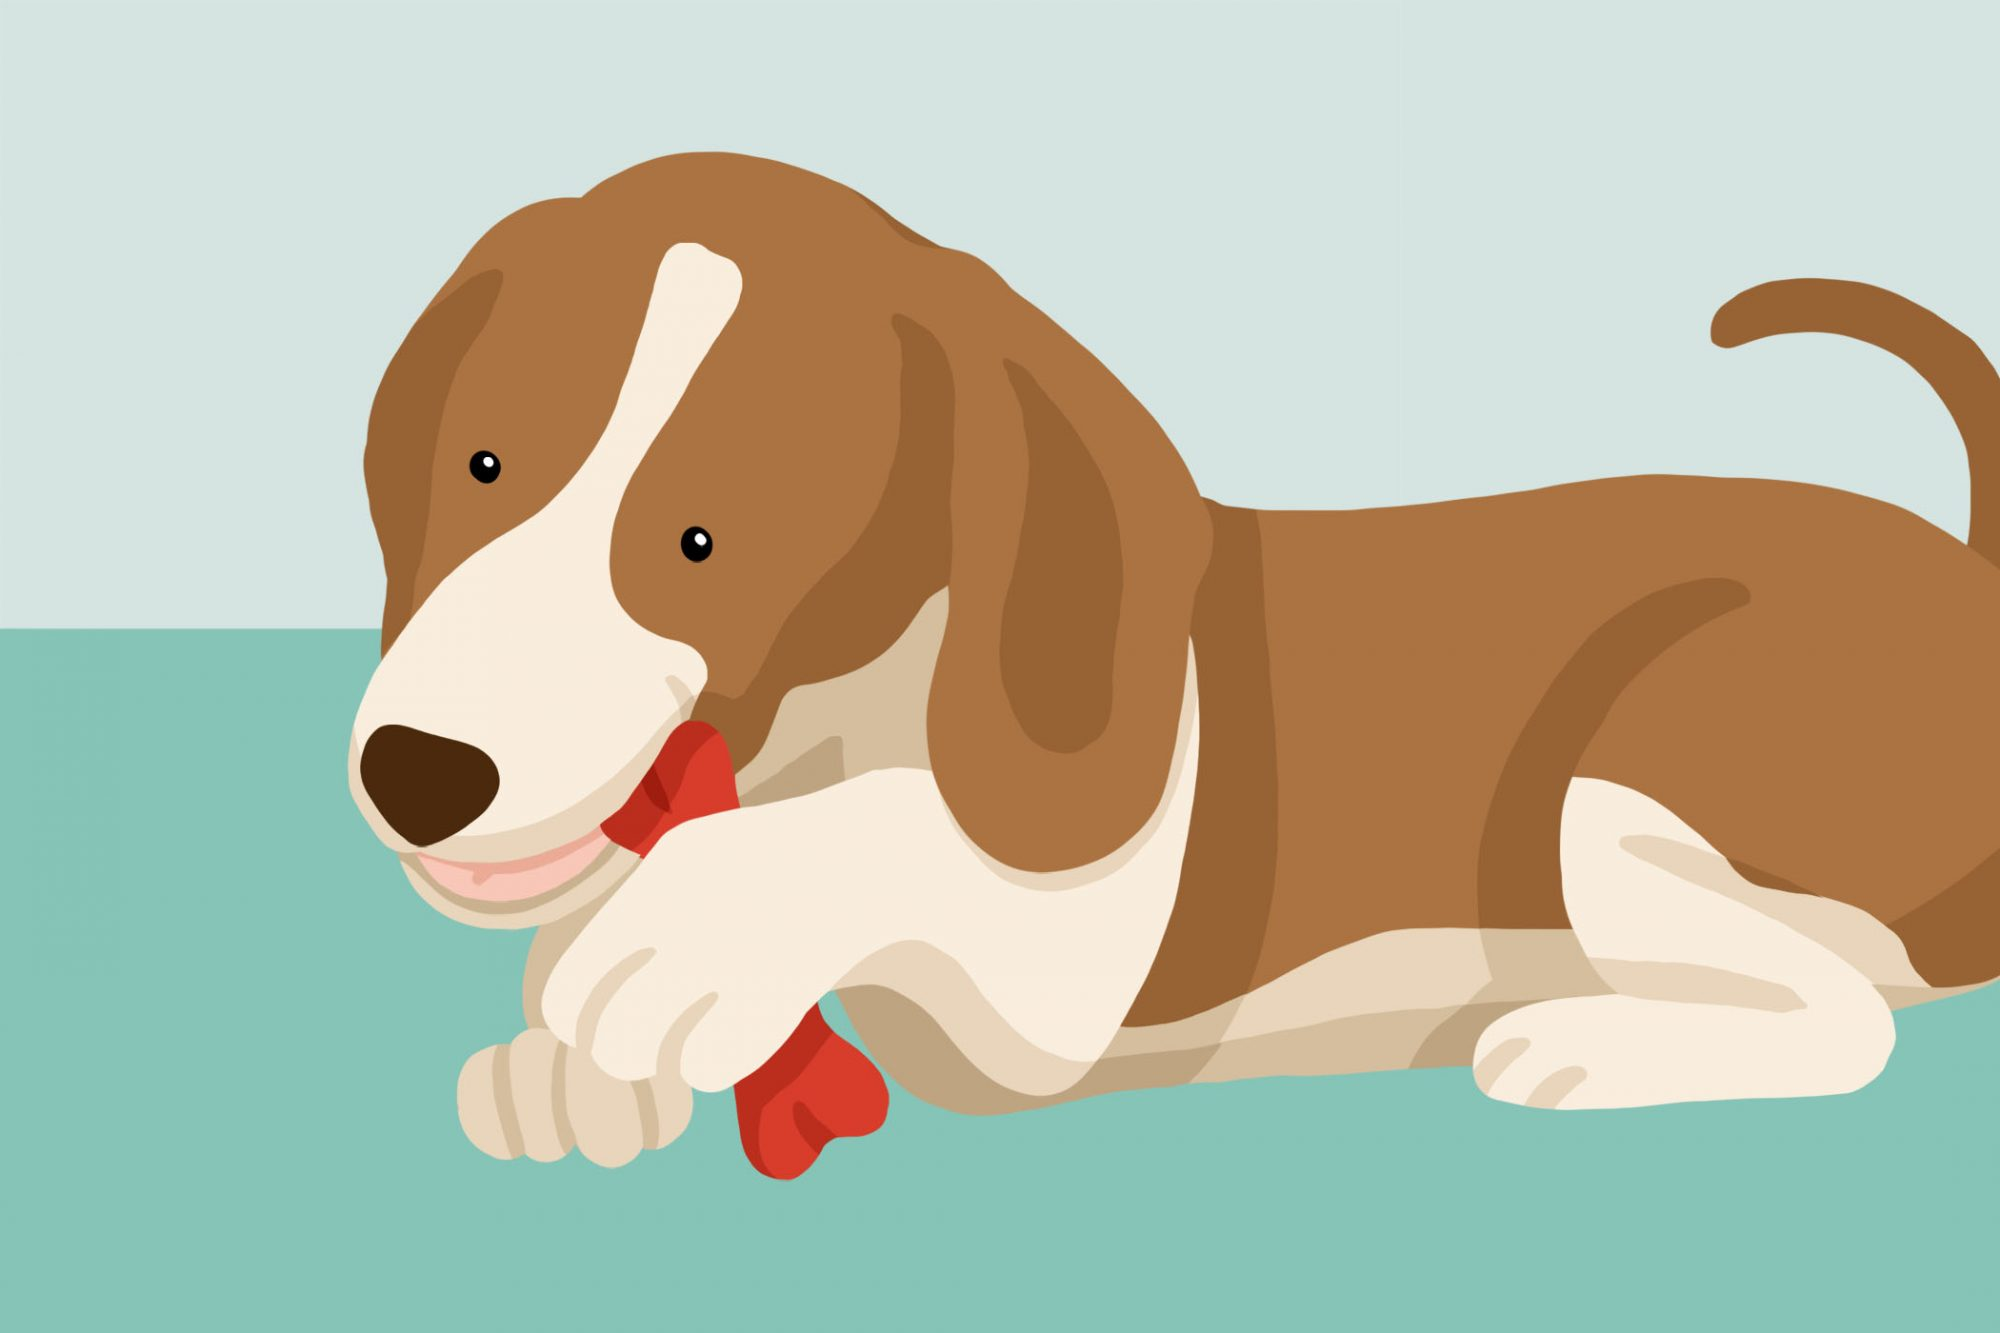 illustration how to help a choking dog dog chewing a bone